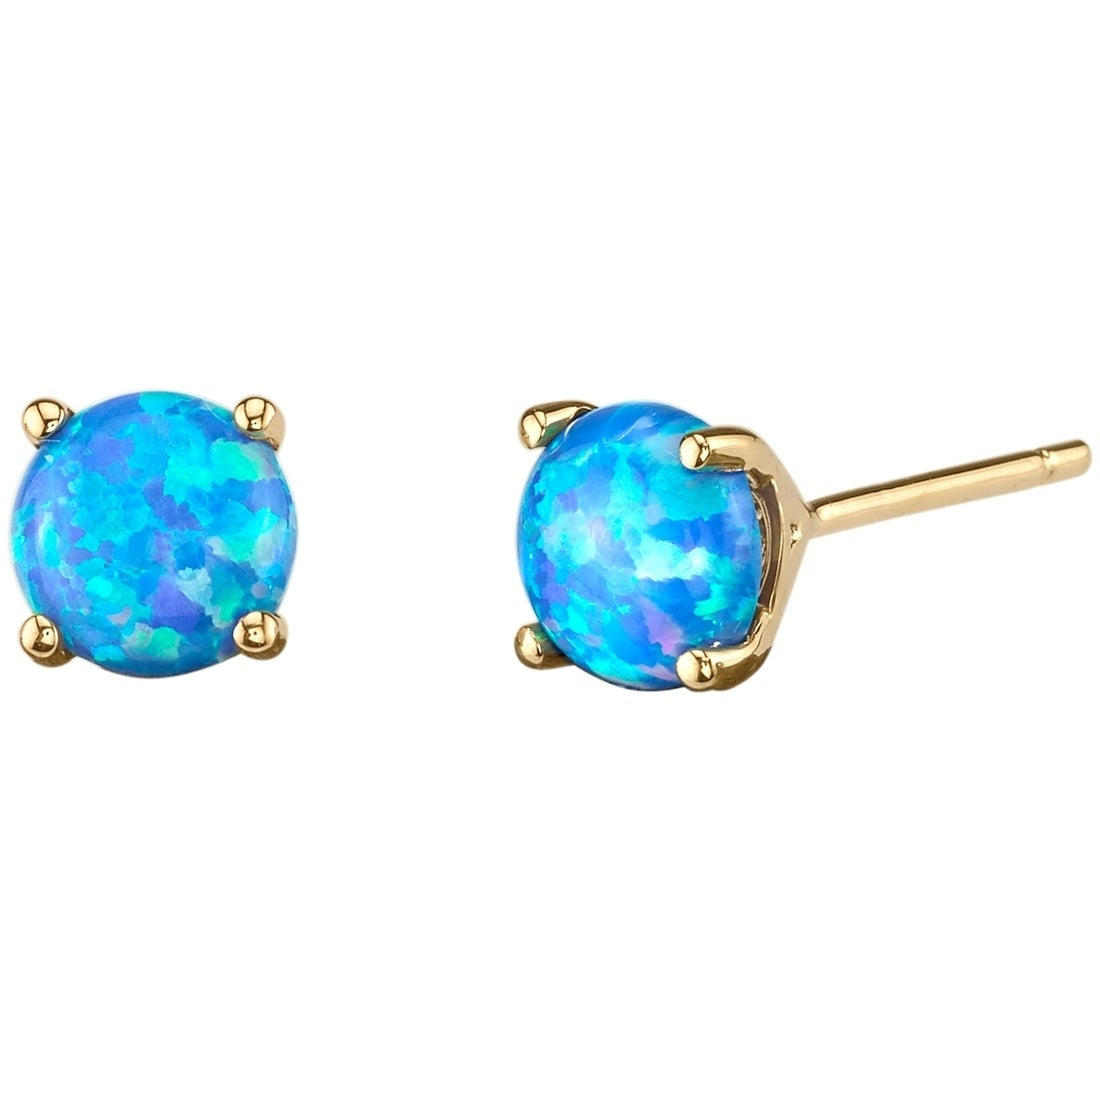 ec64dbf7fccb0 14K Oravo Yellow Gold Round Cut Created Blue Opal Stud Earrings